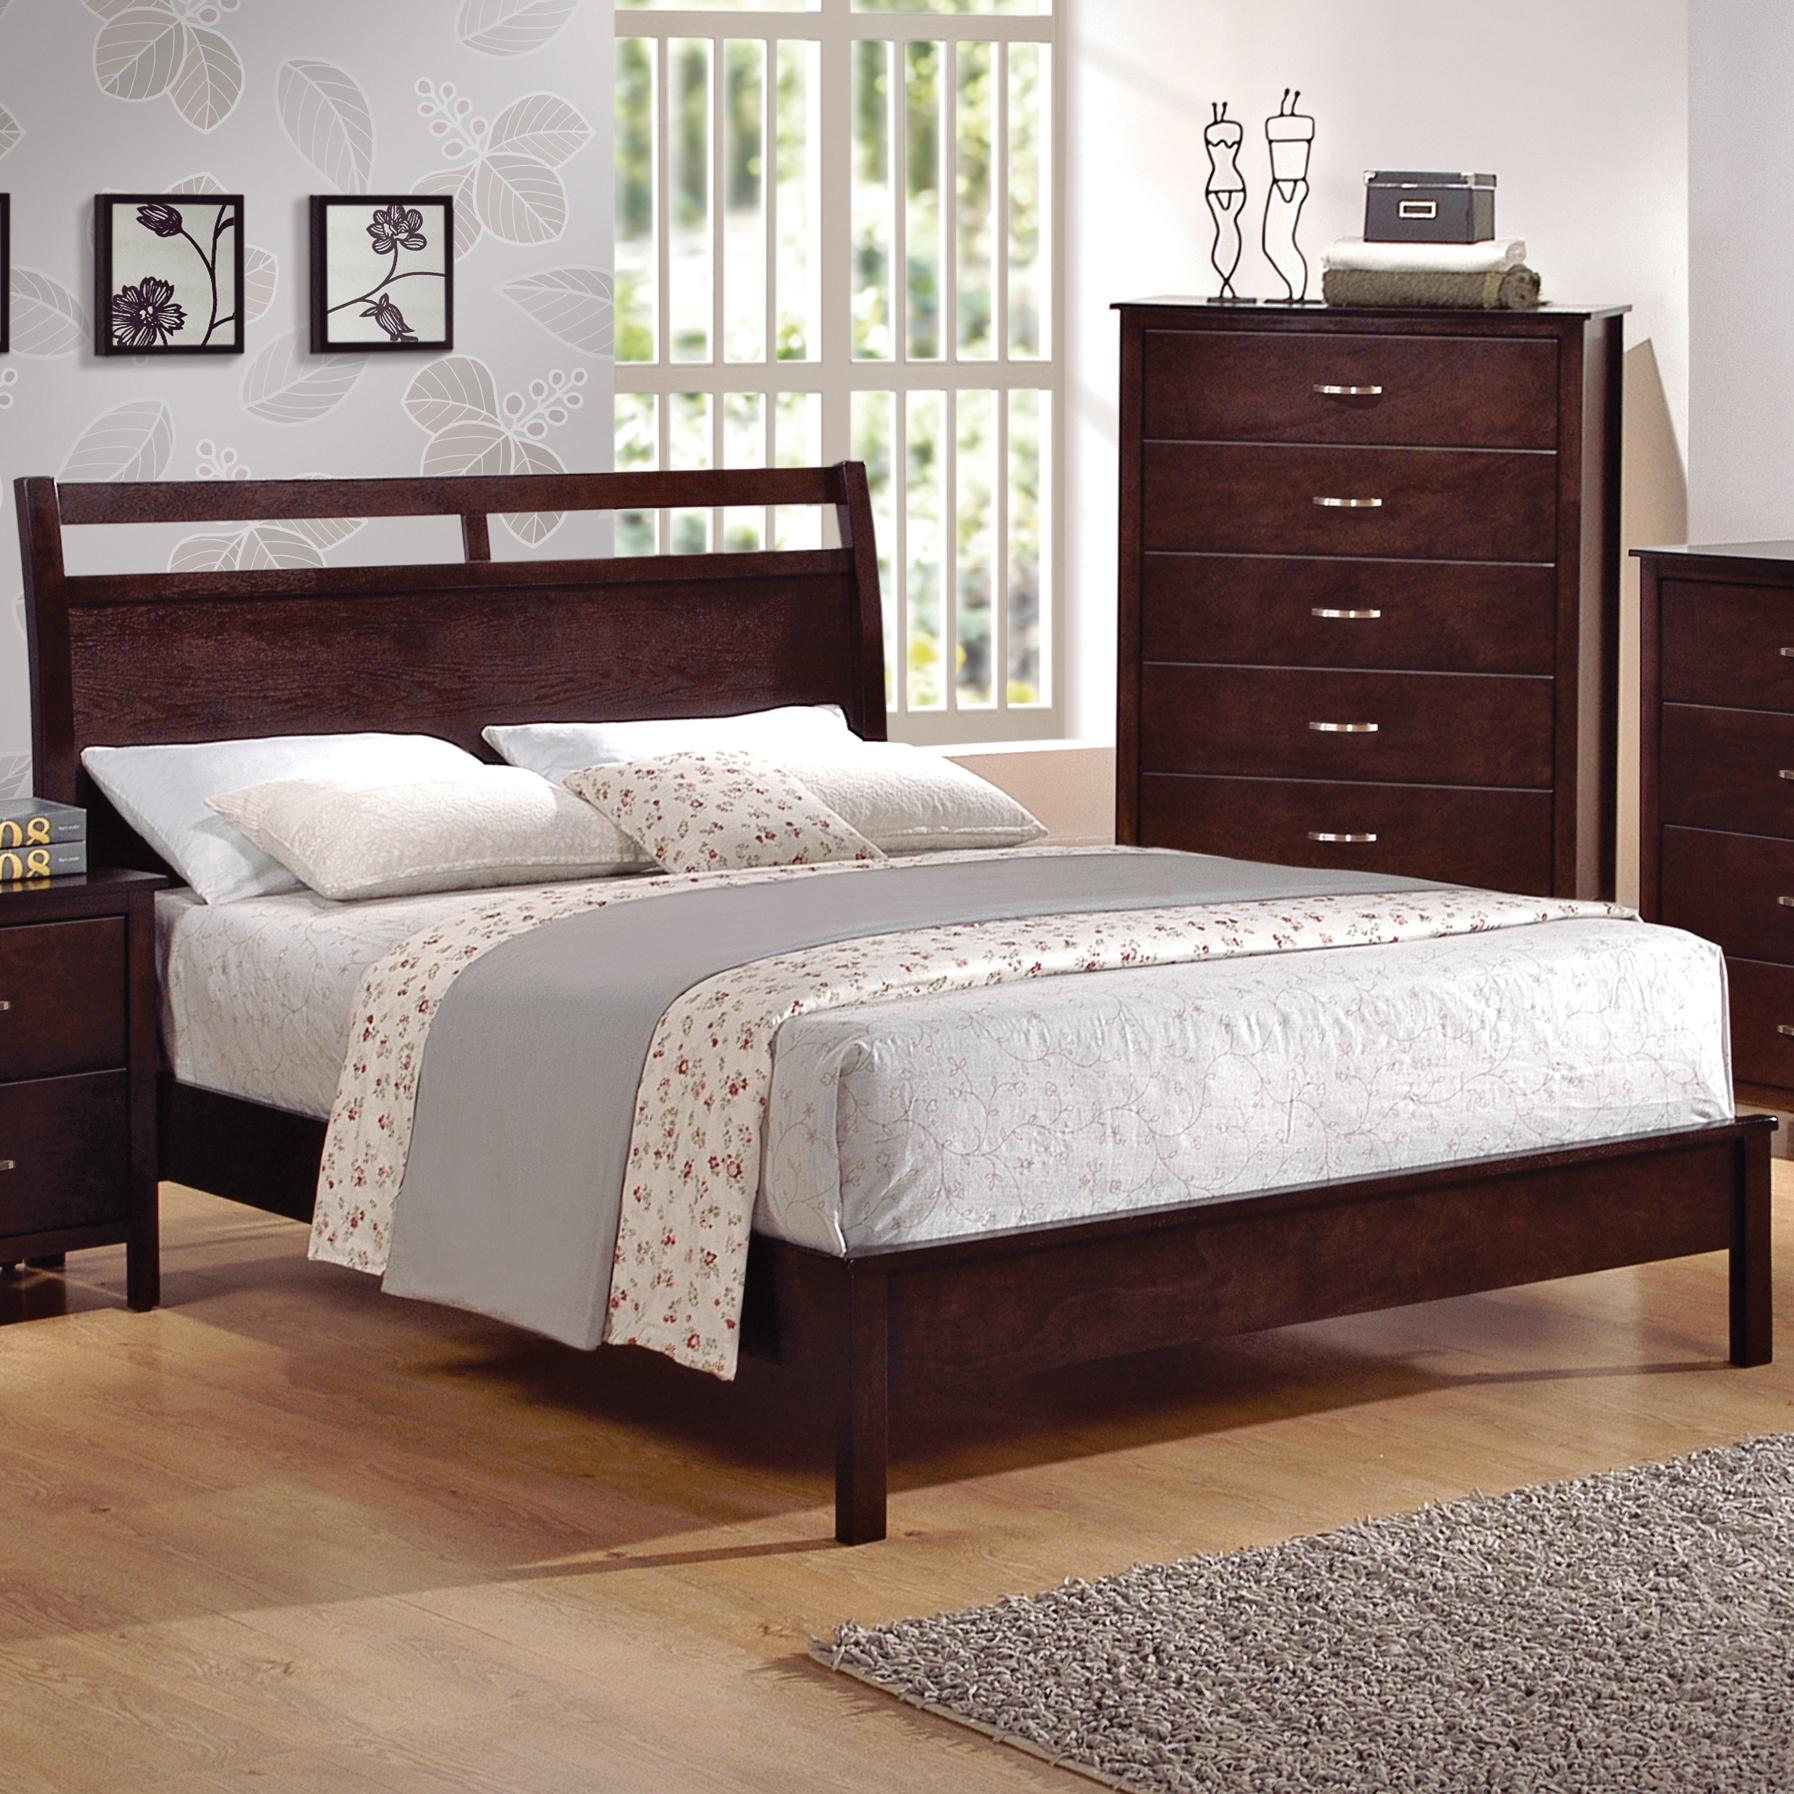 Crown mark ian queen low profile bed with cutout headboard for Furniture markup